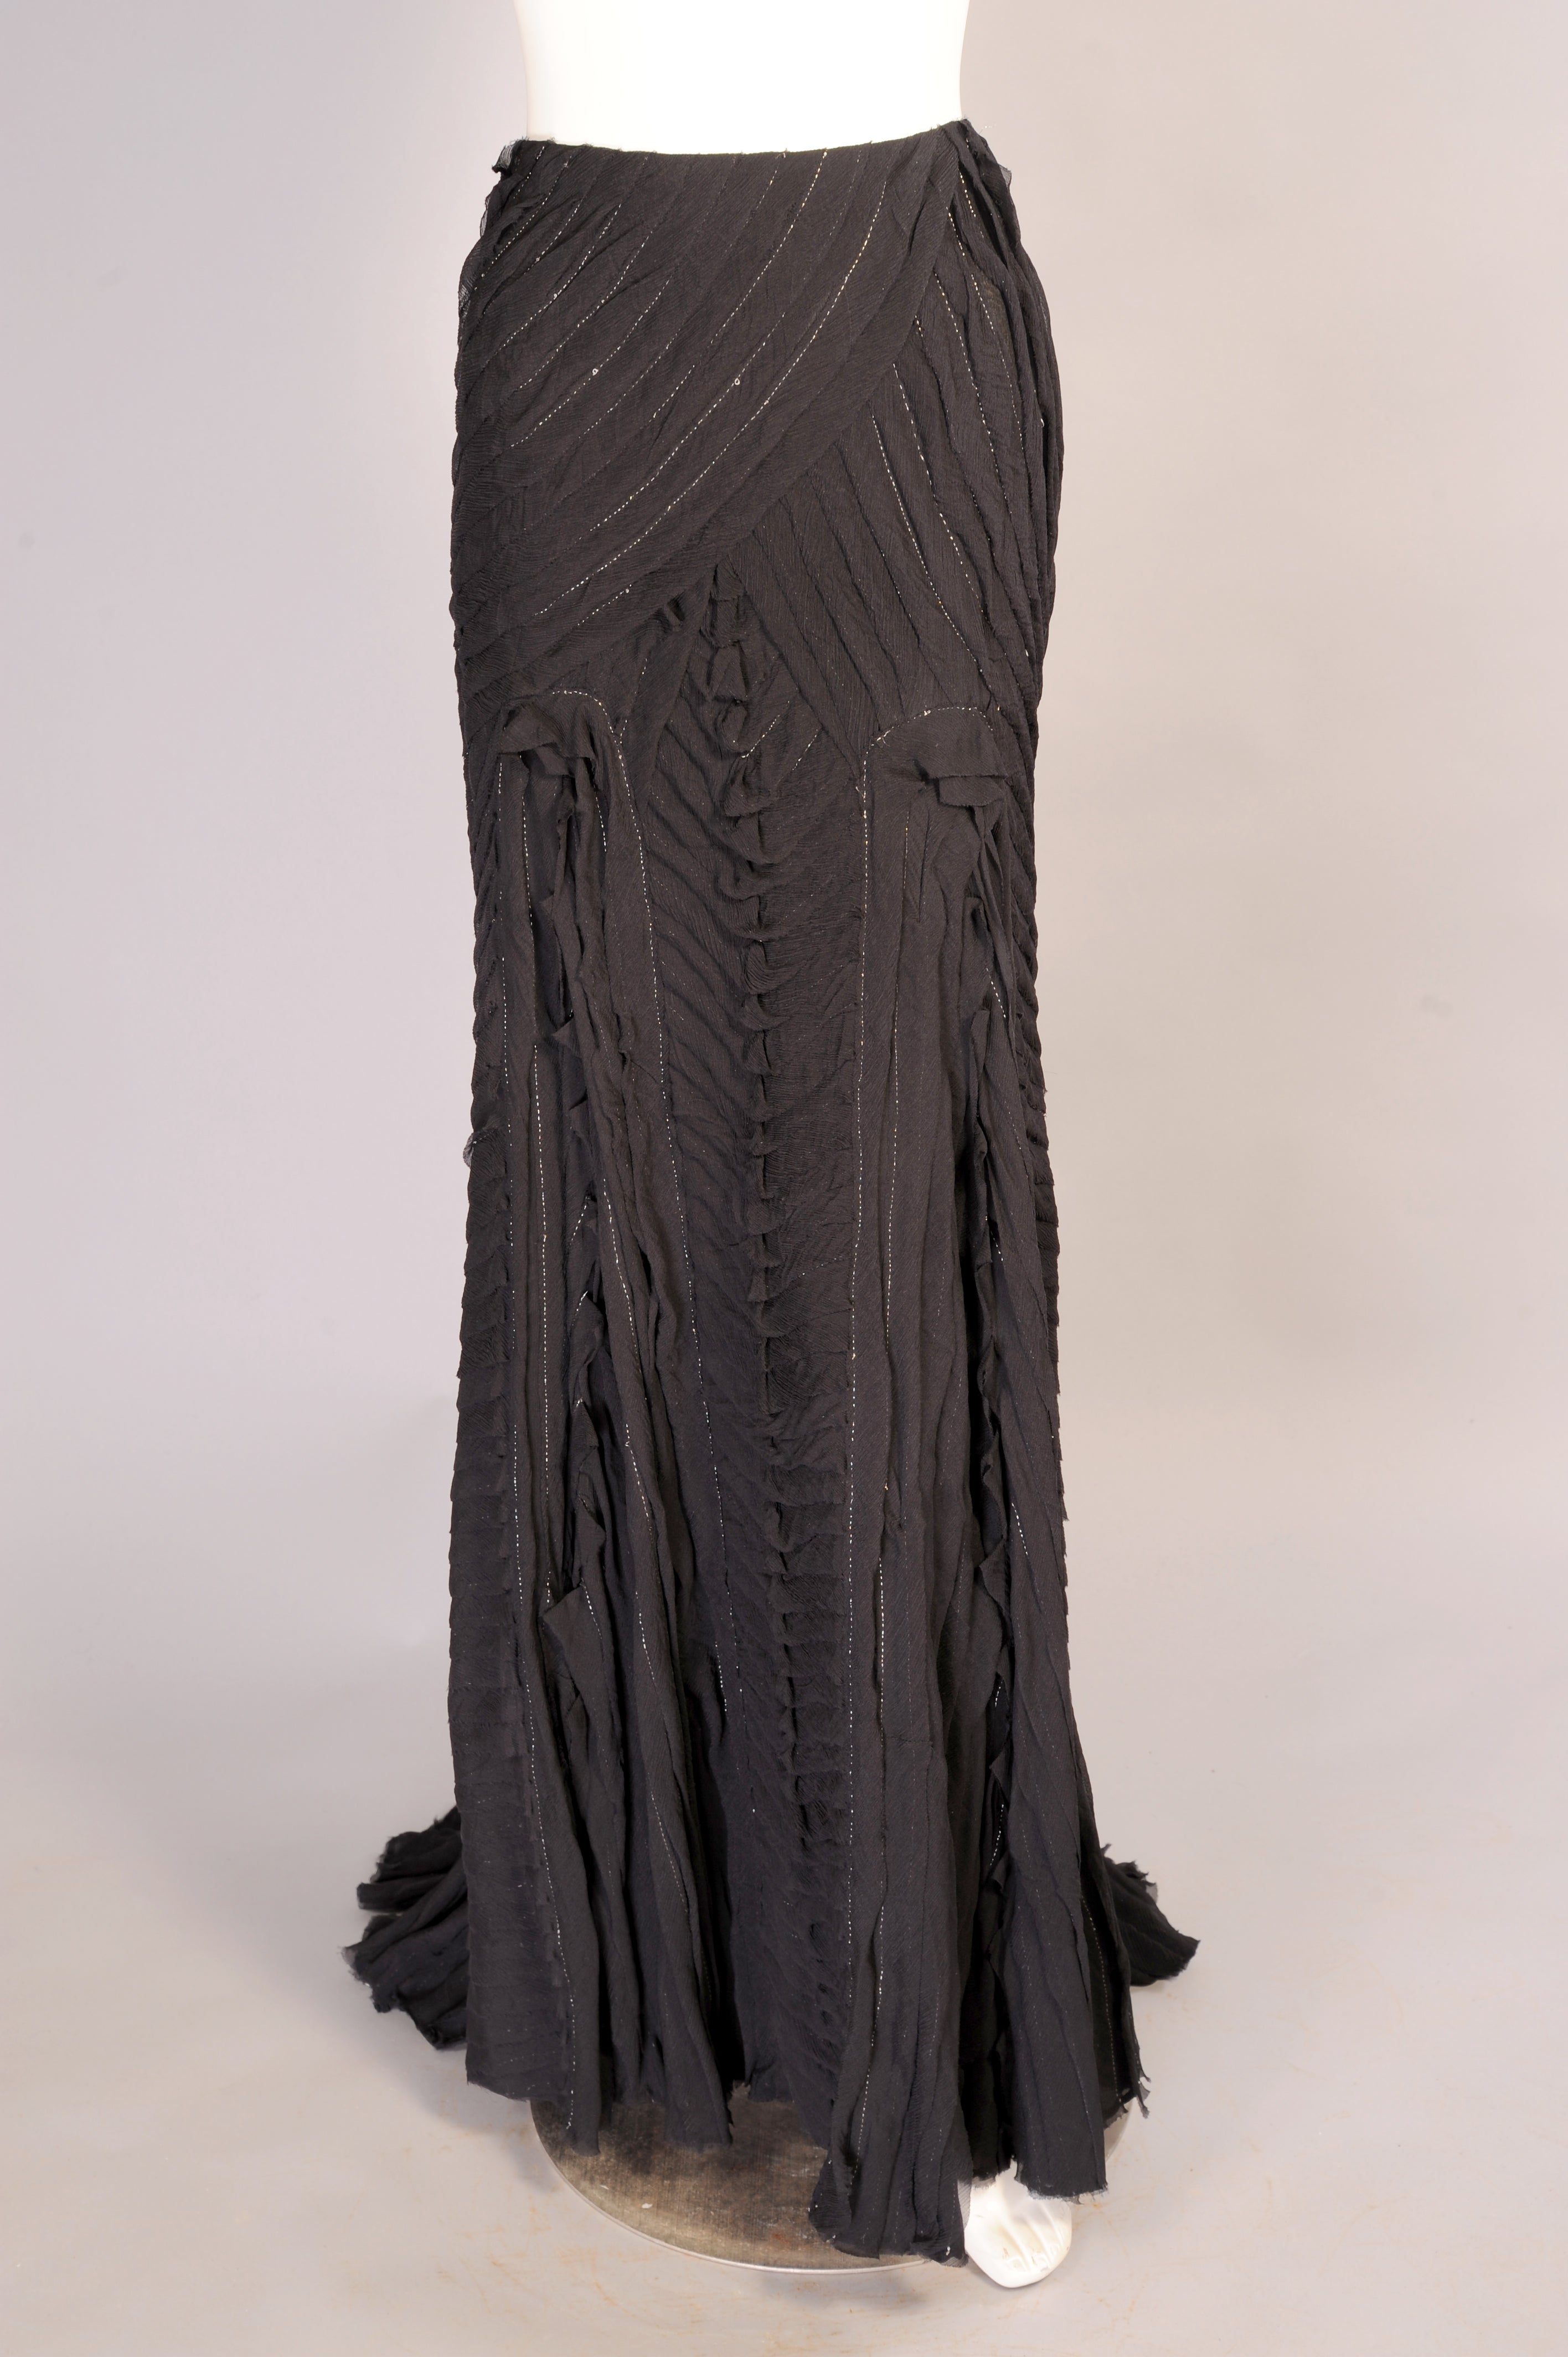 bc5e78aa77 Naeem Khan Tucked Black Silk Chiffon Evening Skirt with Metallic Stitching  For Sale at 1stdibs